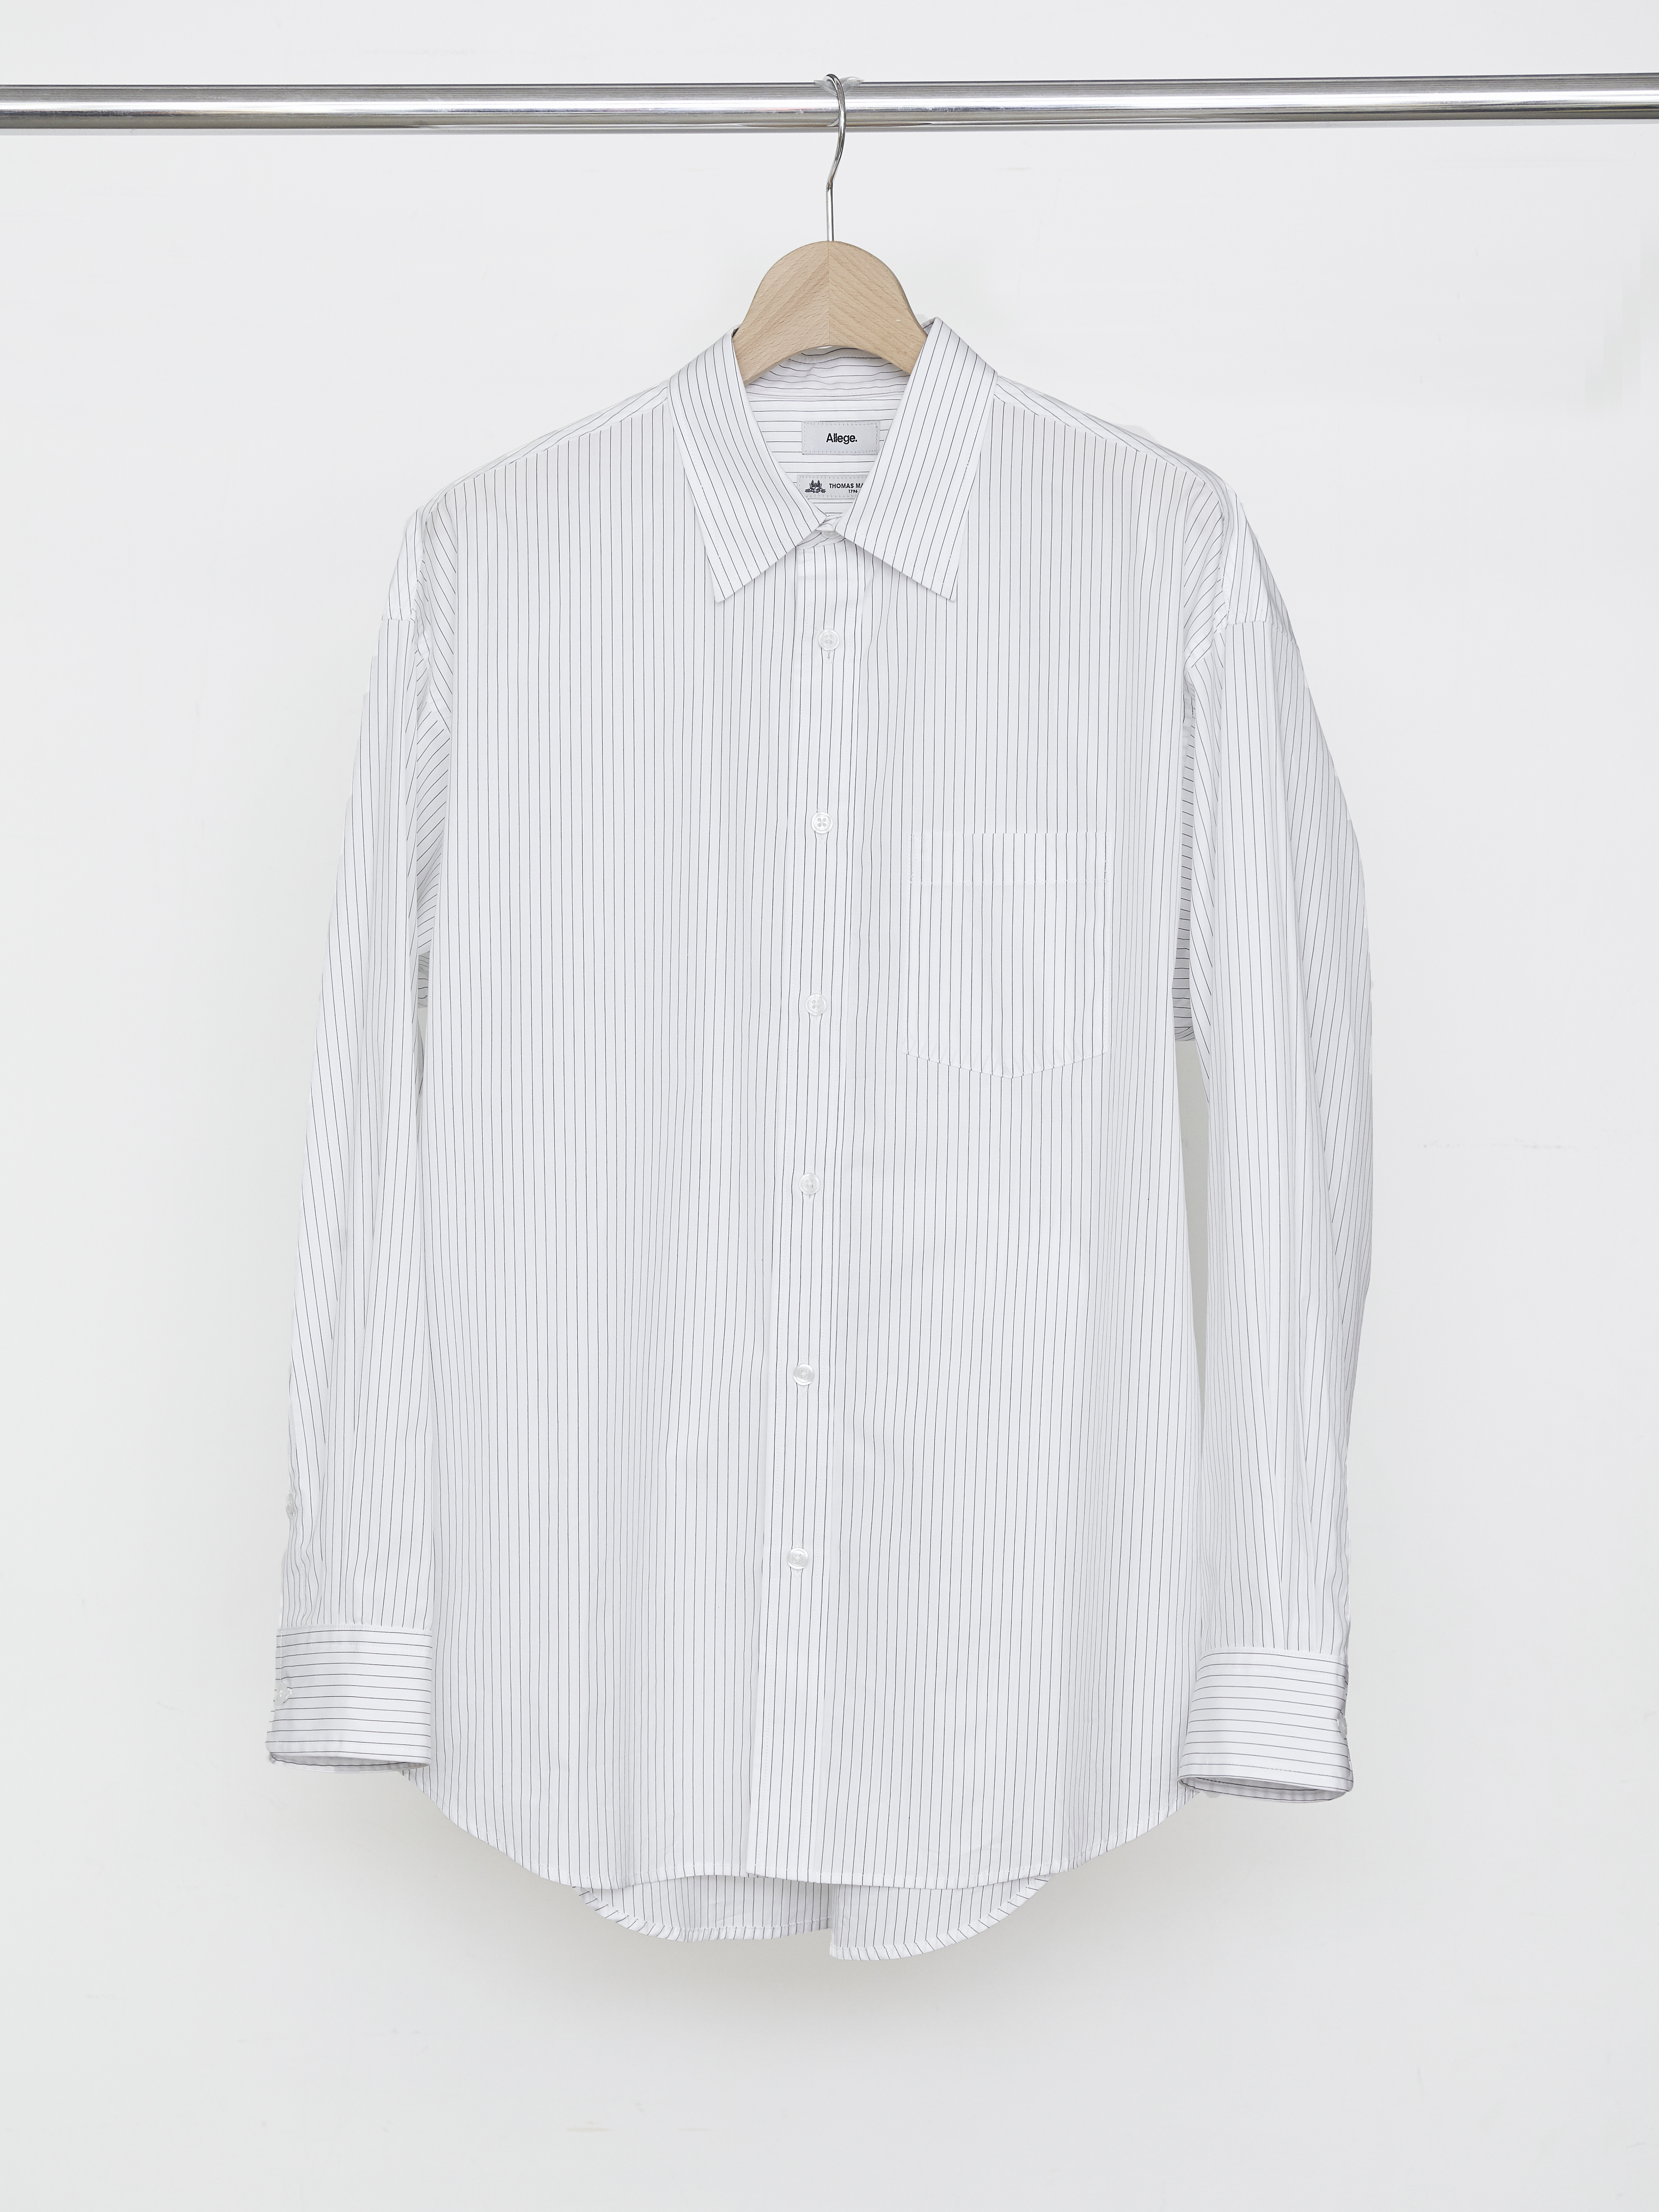 Standard Stripe Shirt - White